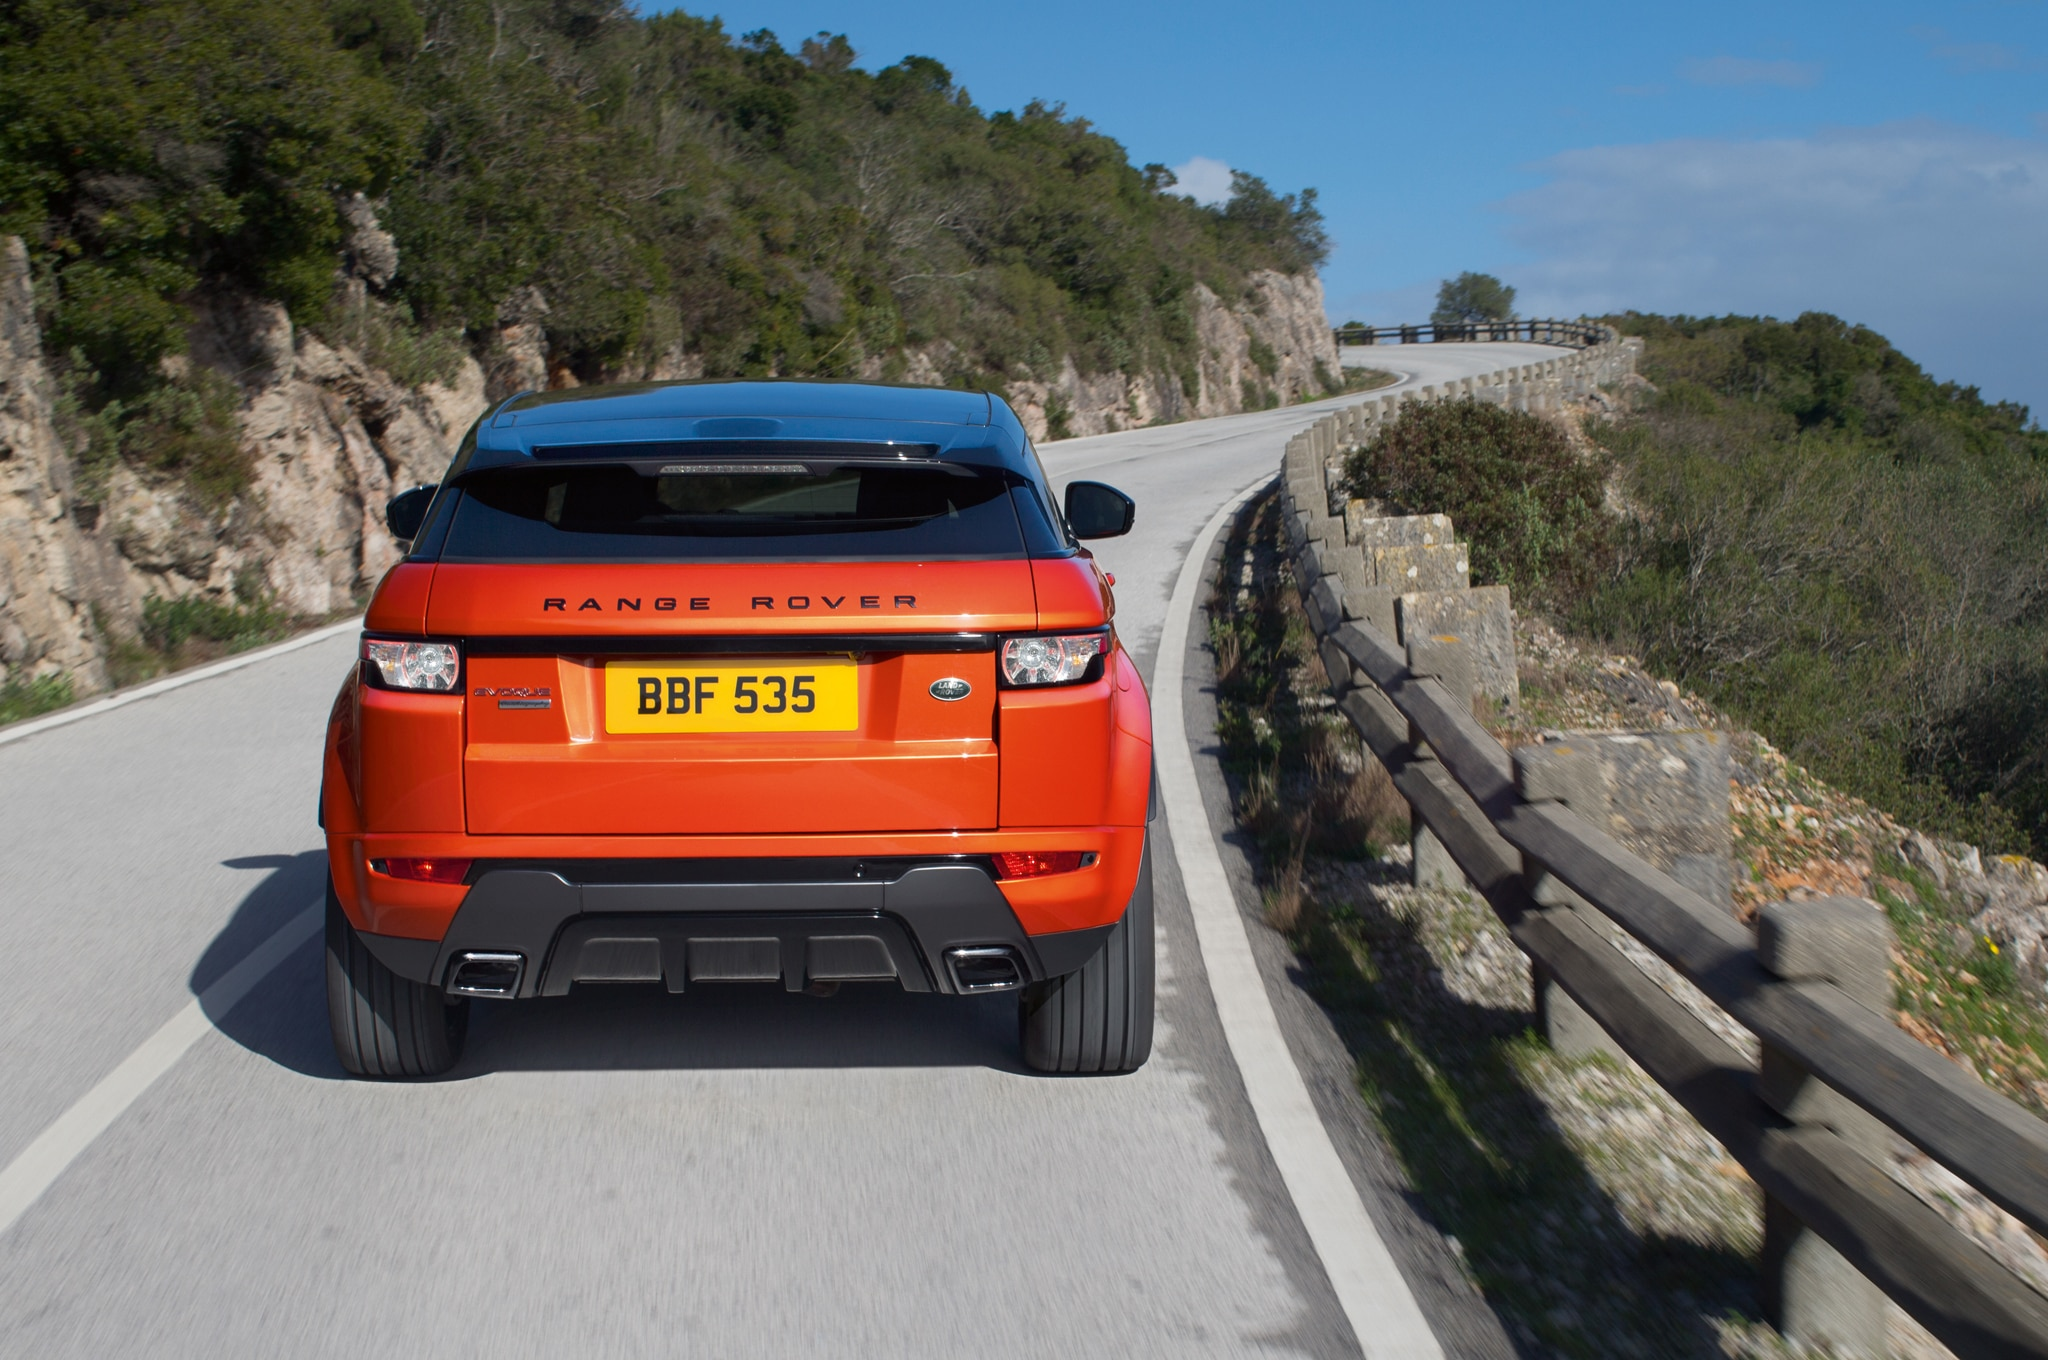 http://st.automobilemag.com/uploads/sites/11/2014/02/2015-land-rover-range-rover-evoque-autobiography-dynamic-rear-in-motion.jpg